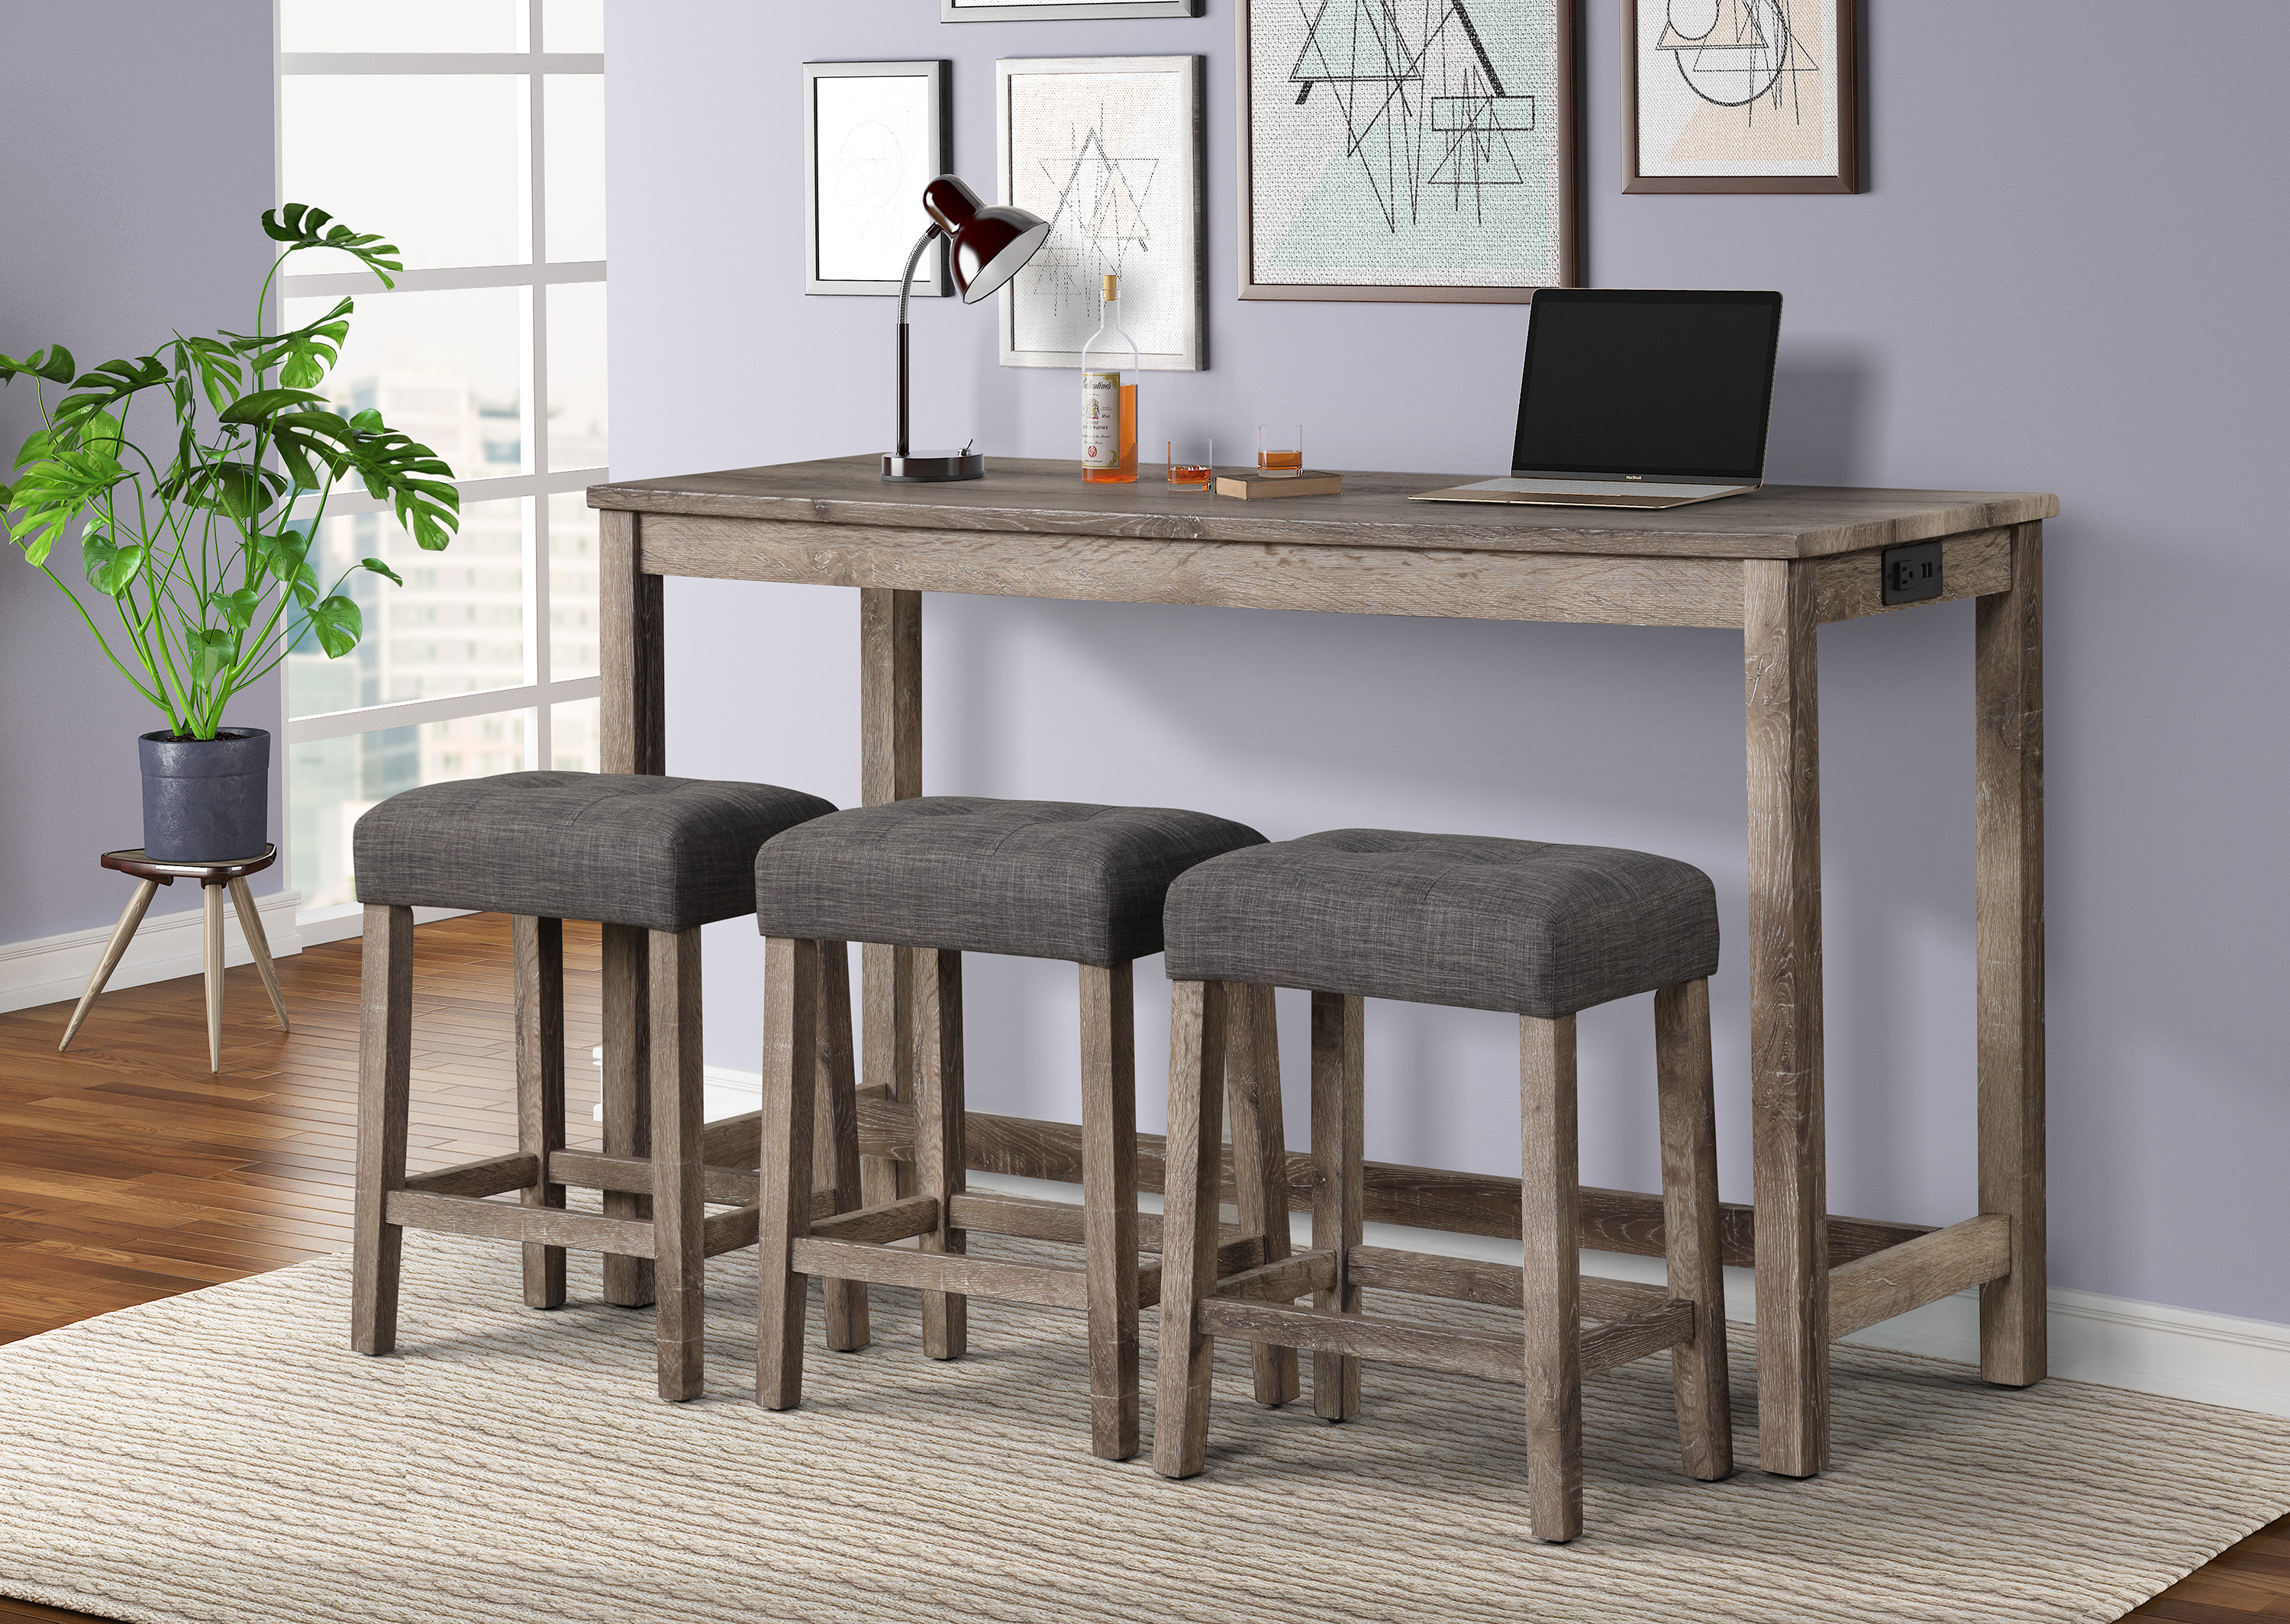 Wren Console Table with 3 Stools by Crown Mark at Northeast Factory Direct